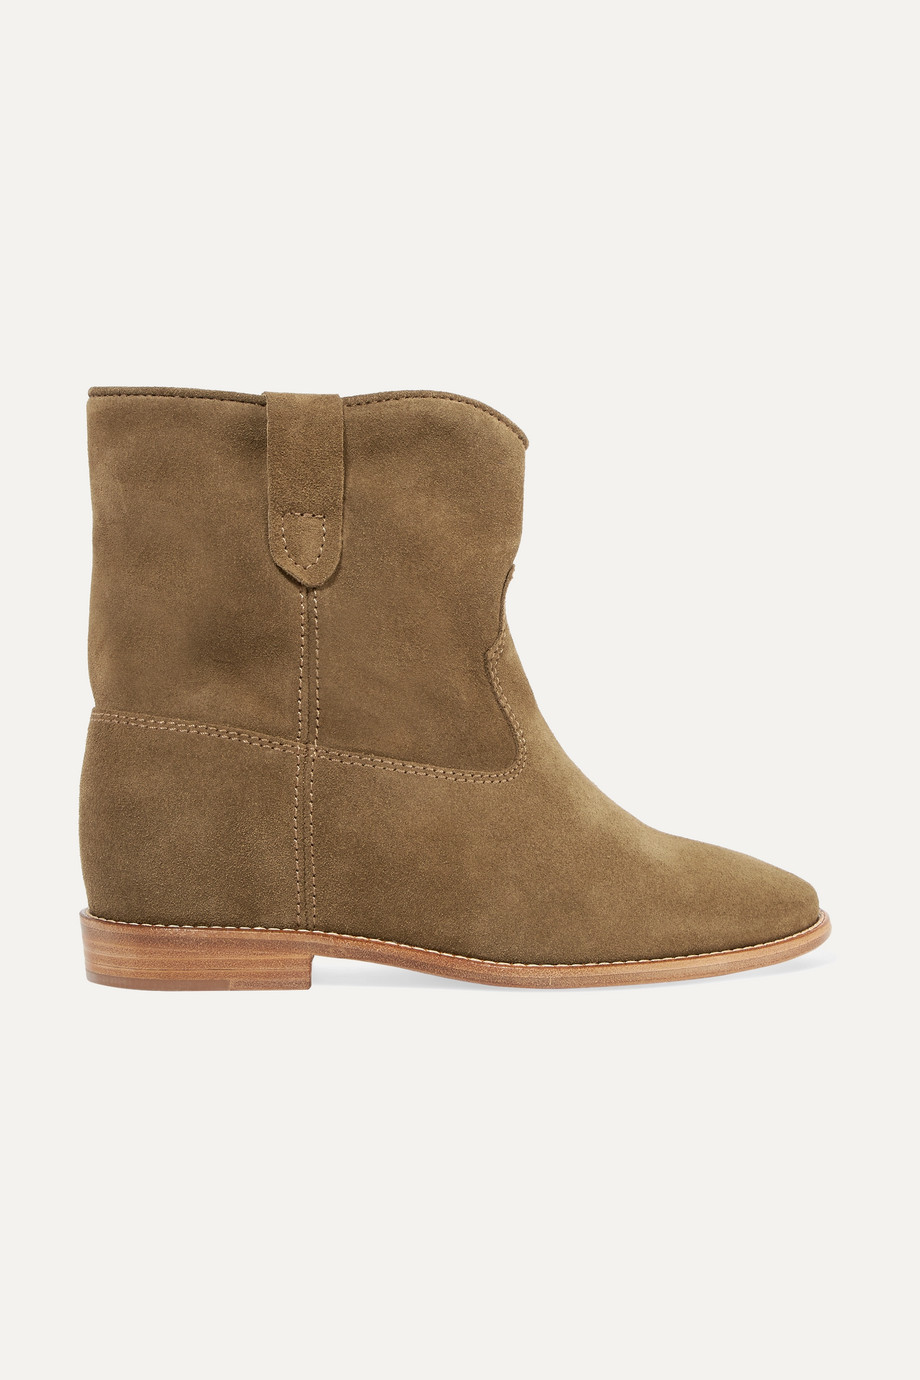 Isabel Marant Crisi suede ankle boots